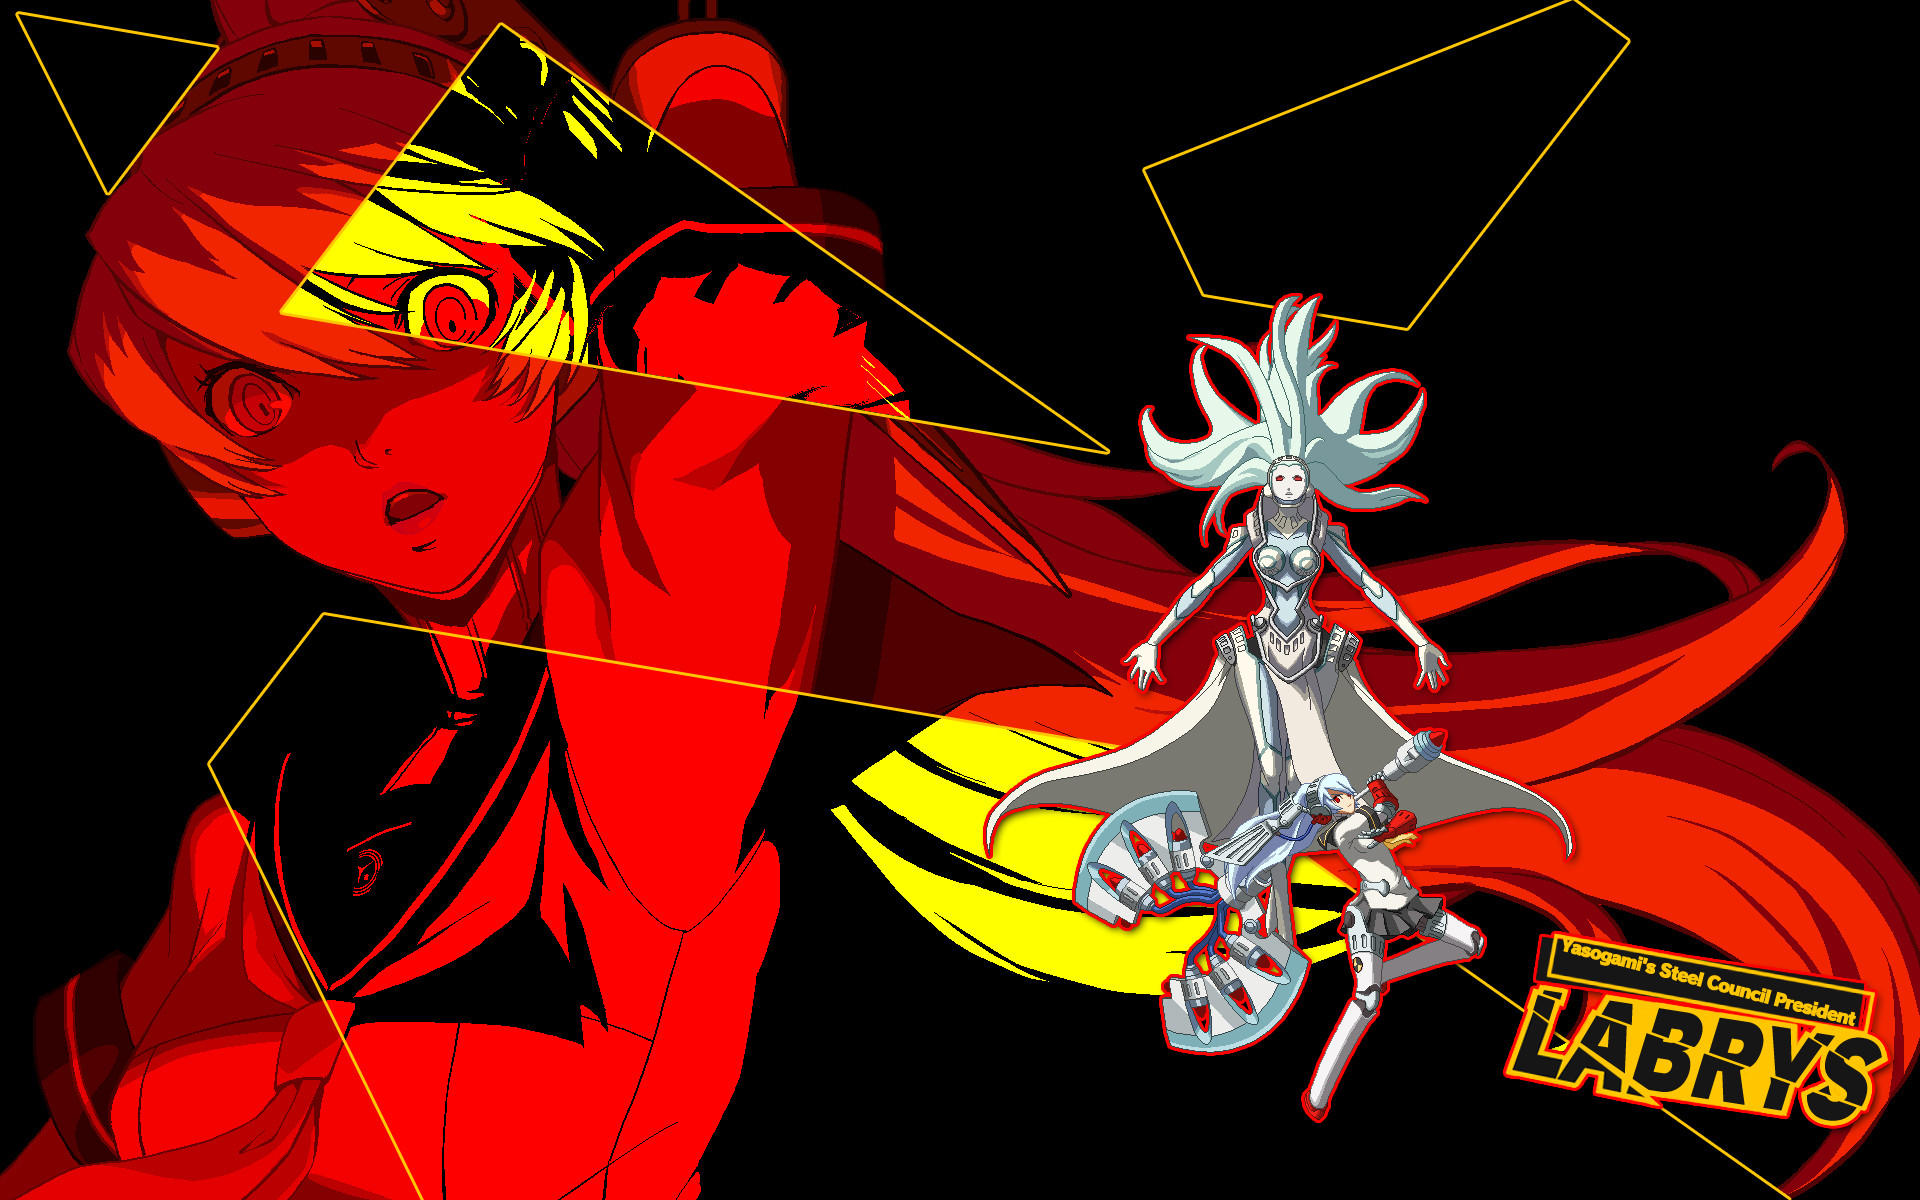 … Labrys – Persona 4 Arena Wallpaper for PC / PS3 by seraharcana